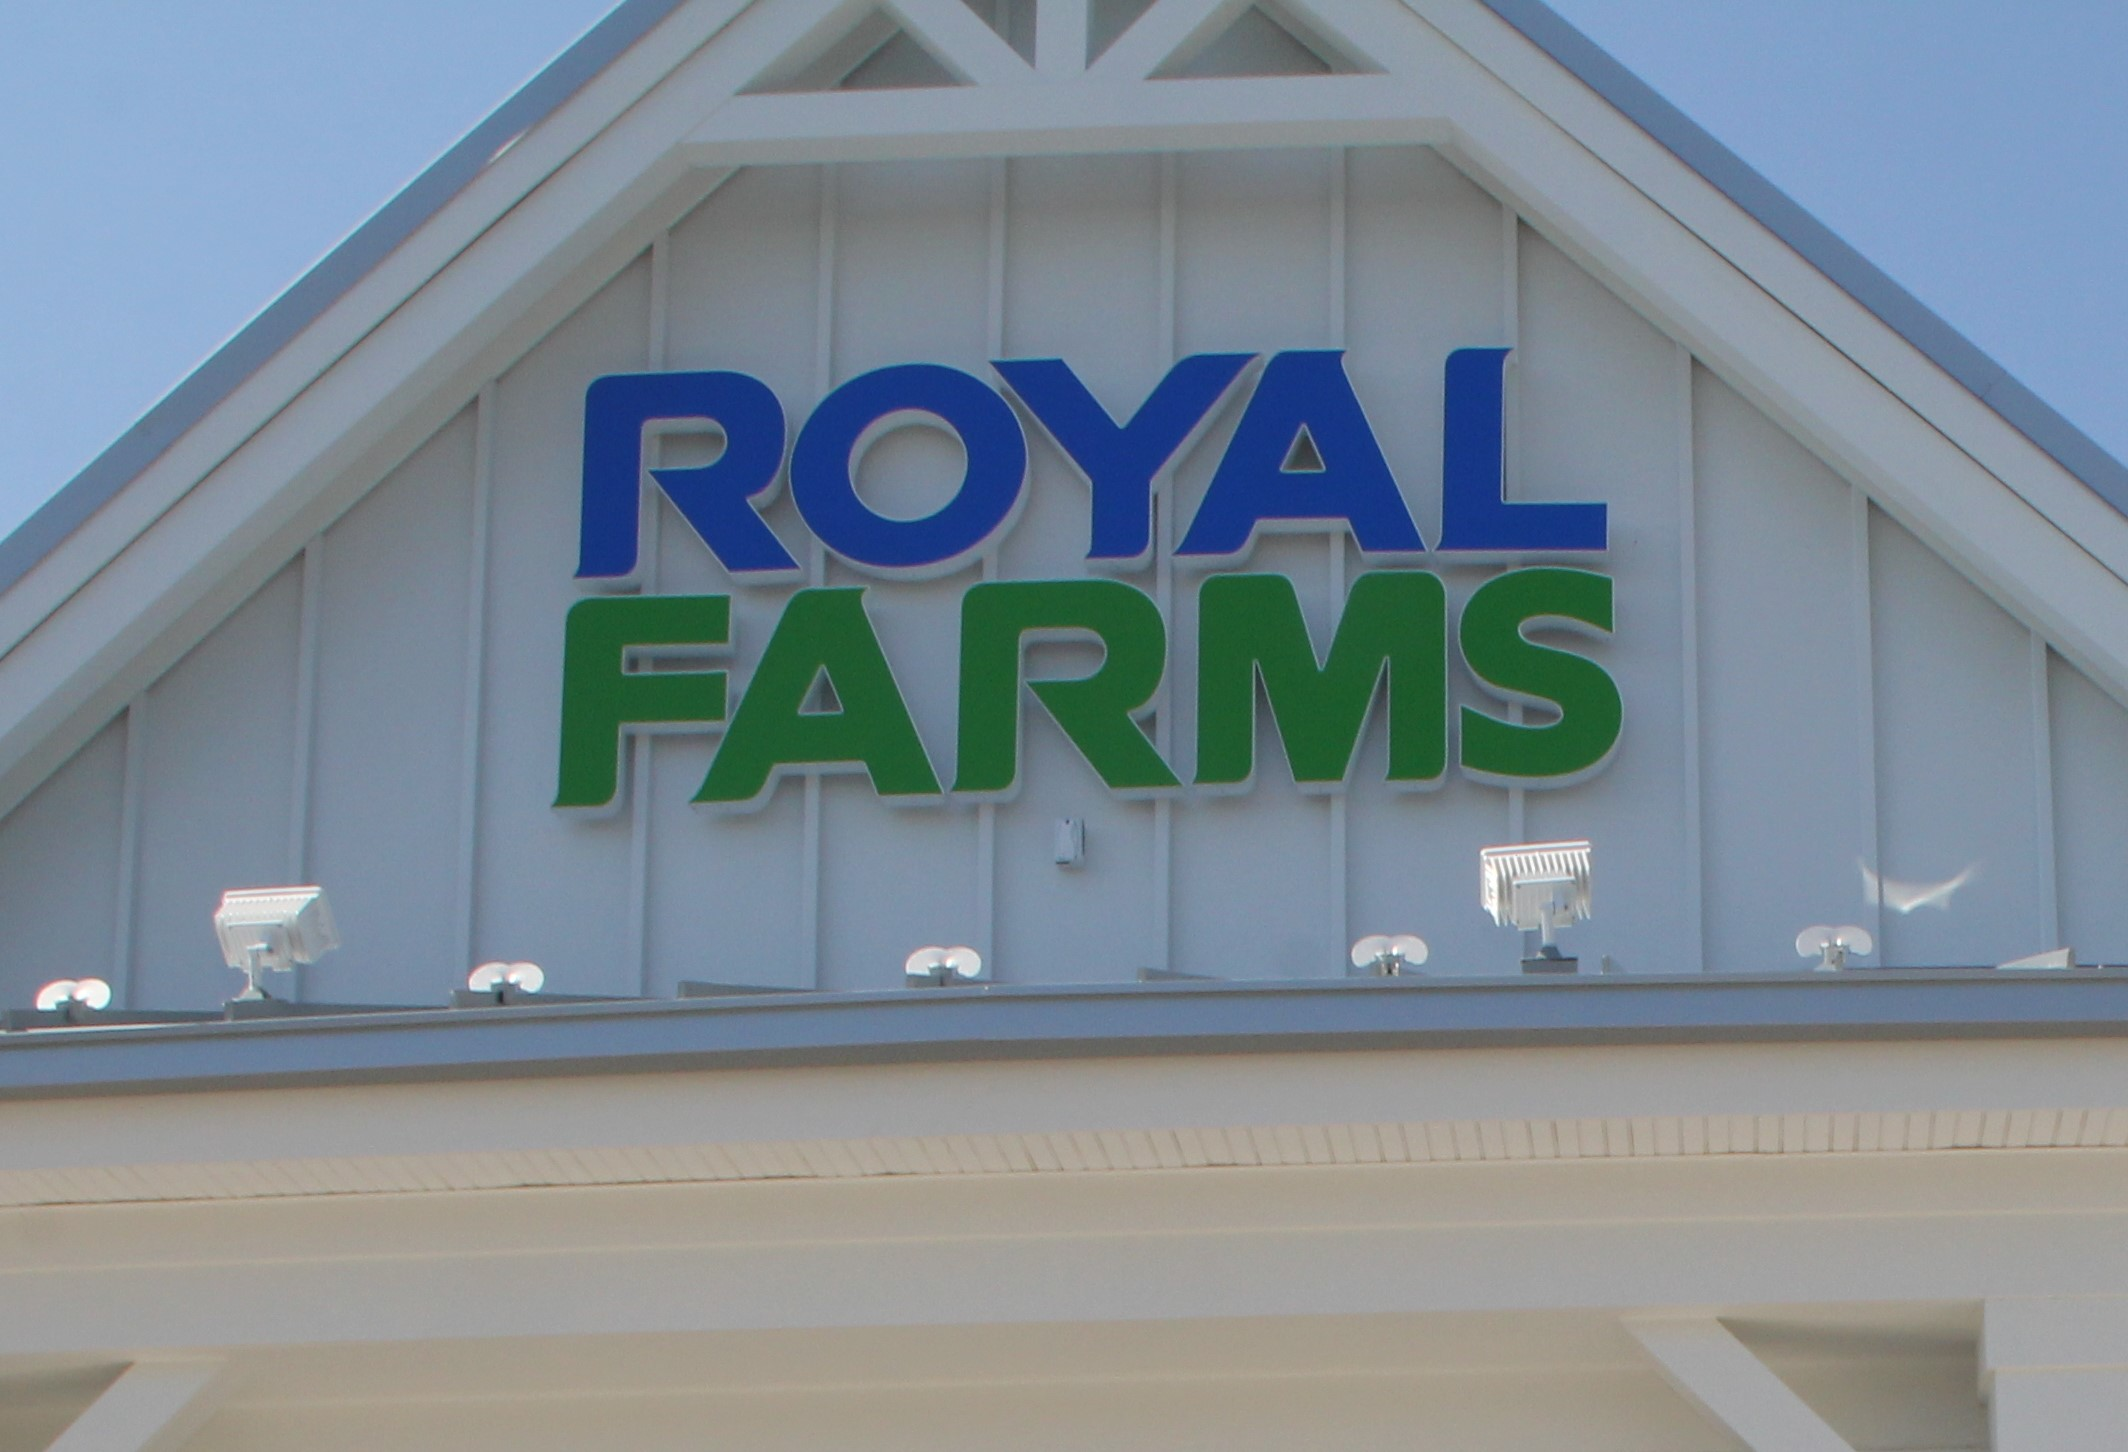 Marple Township Reaches Deal on New Royal Farms Site